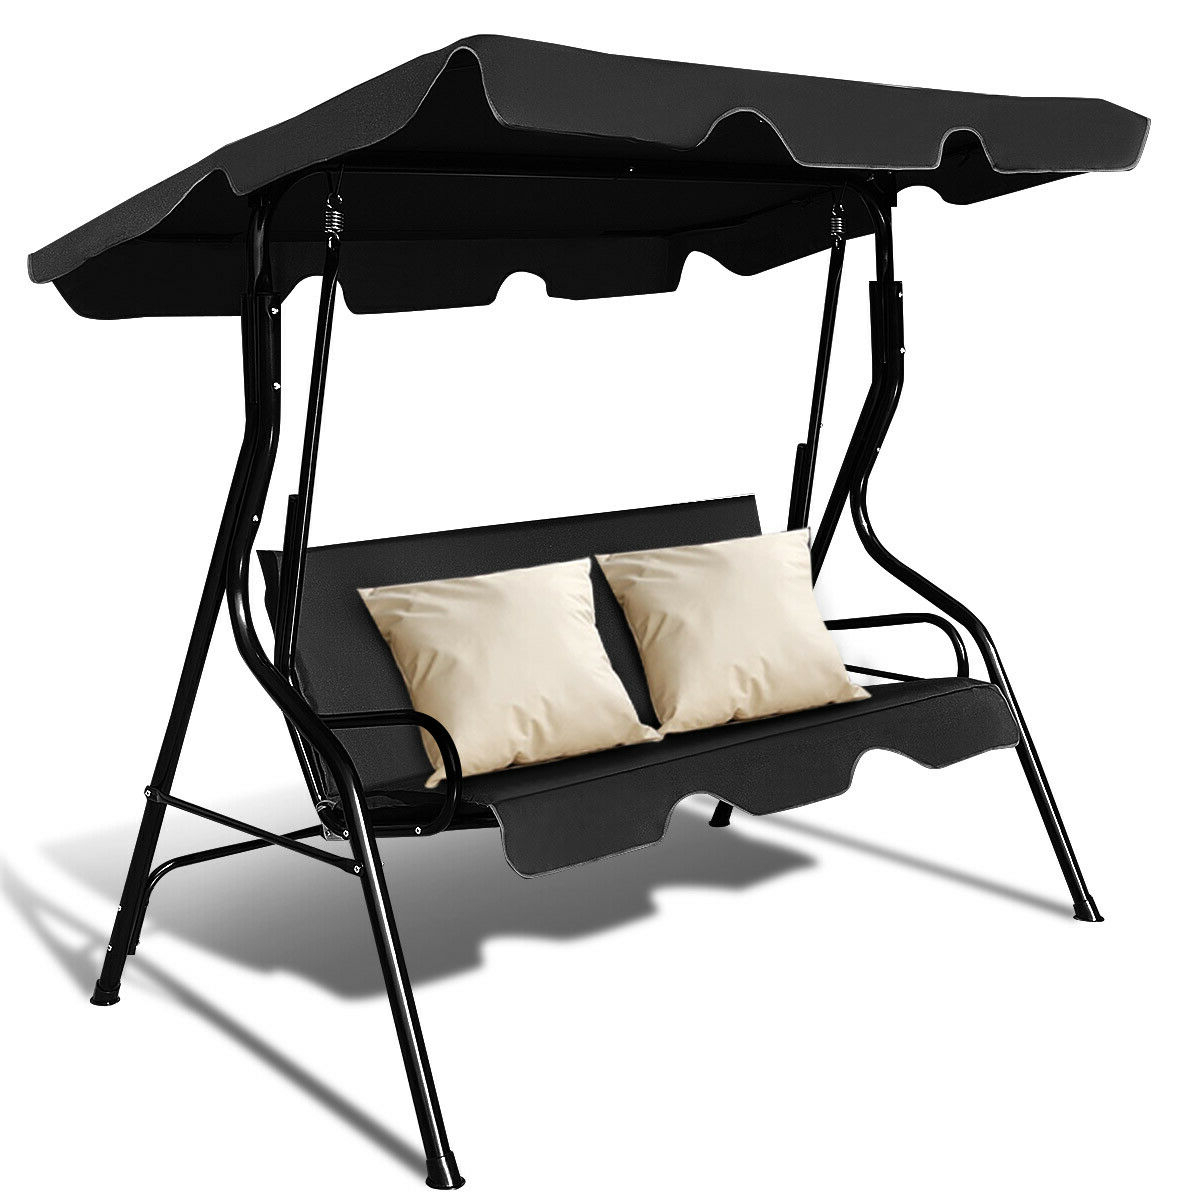 Most Up To Date Costway 3 Seats Patio Canopy Swing Glider Hammock Cushioned Steel Frame  Backyar Black – Walmart In 2 Person Outdoor Convertible Canopy Swing Gliders With Removable Cushions Beige (Gallery 26 of 30)